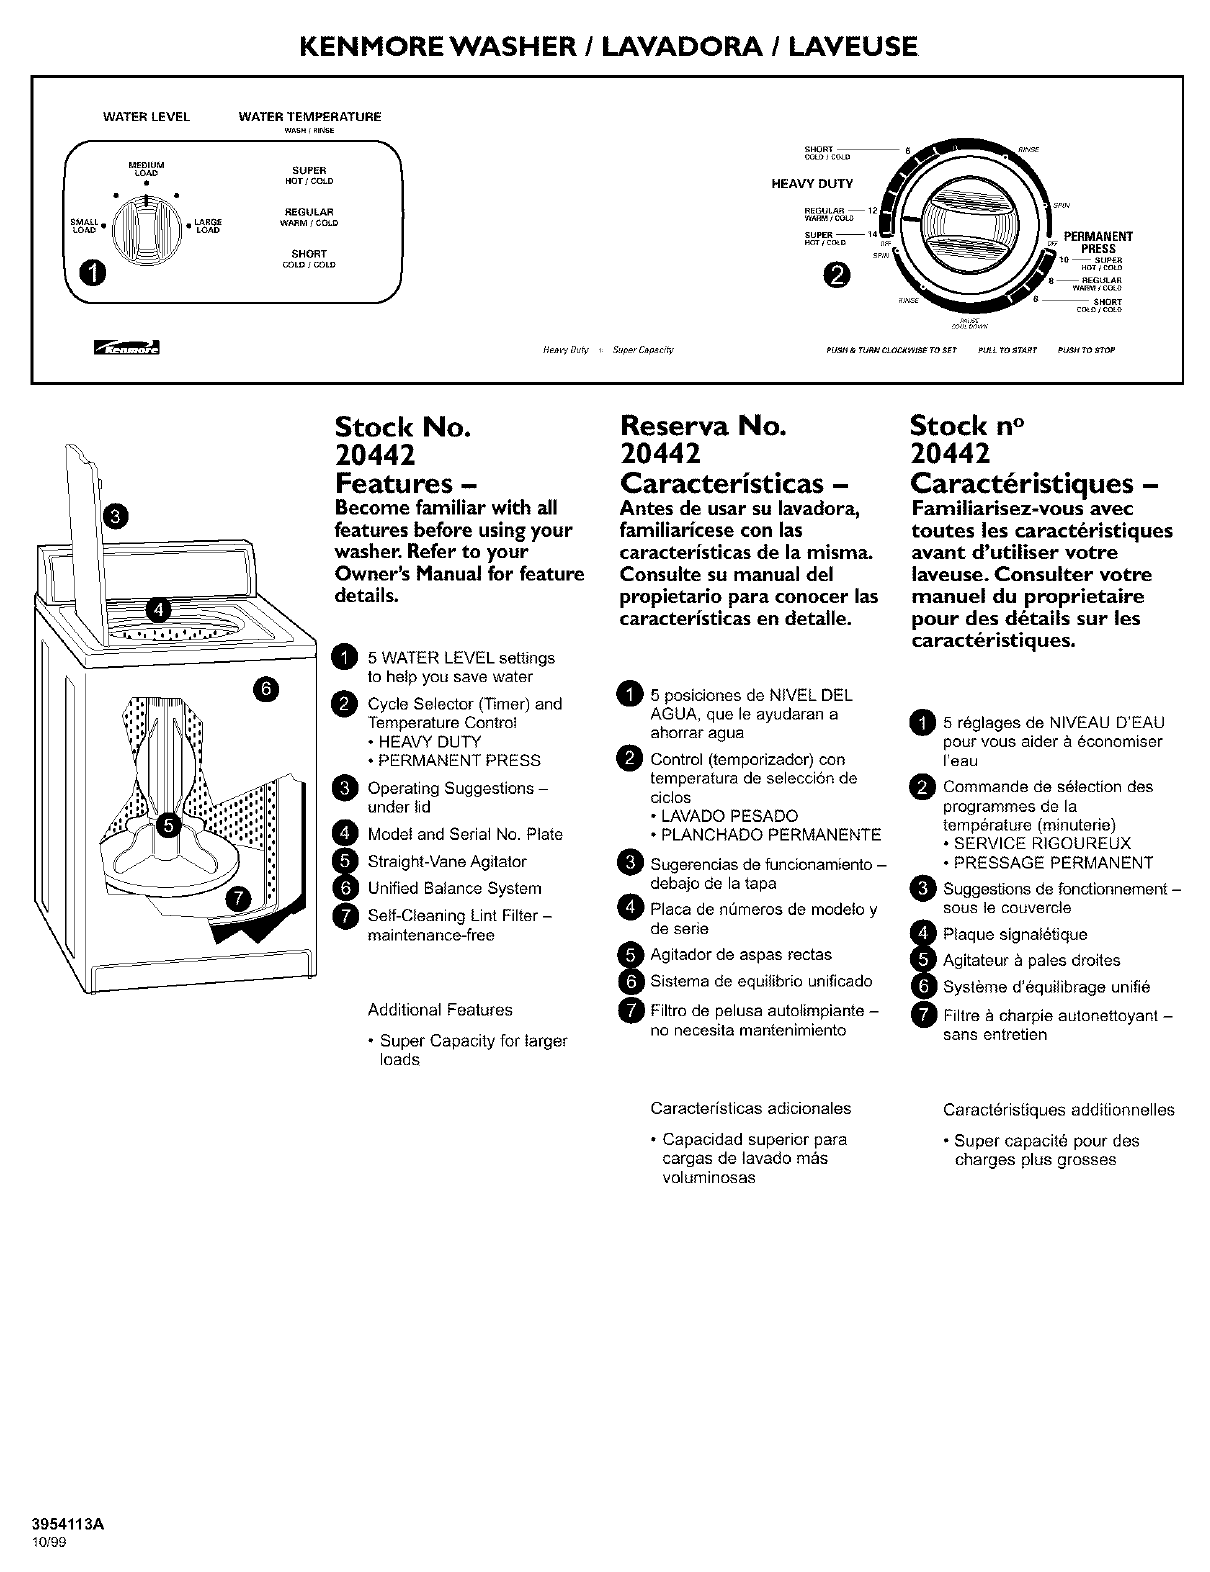 Kenmore Manual